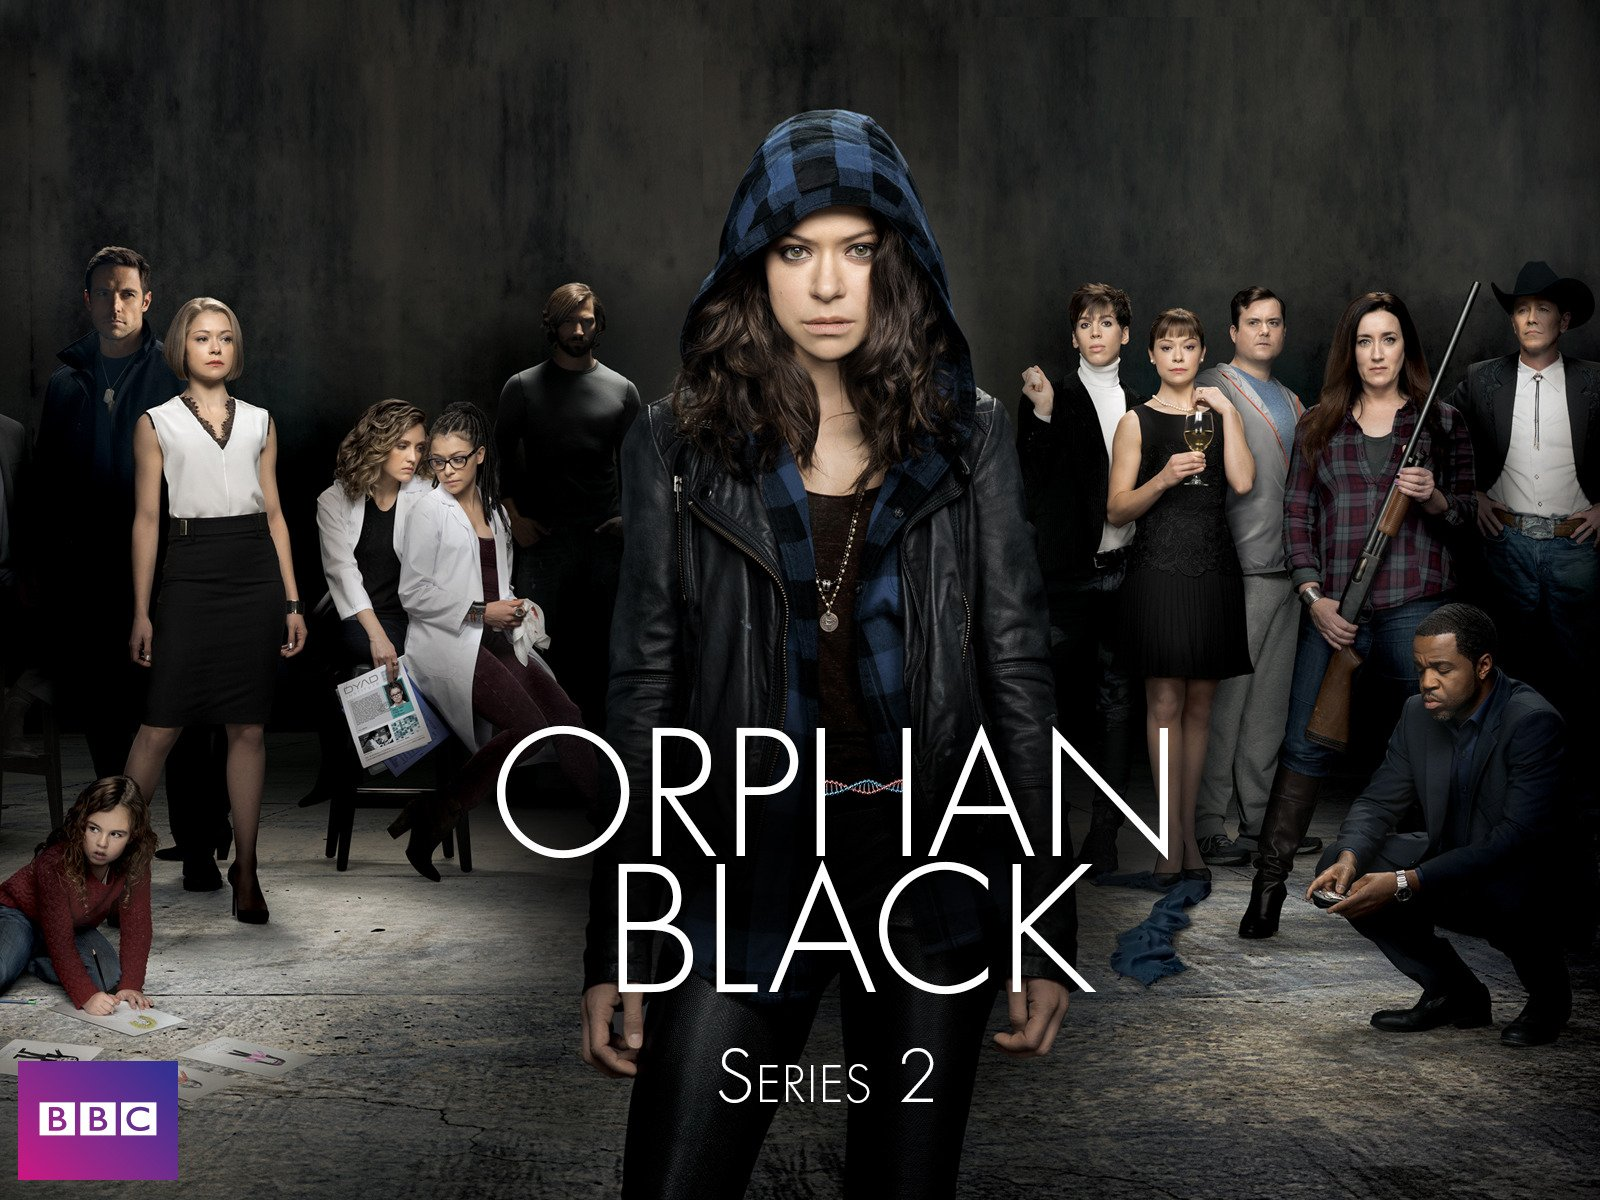 Orphan black t shirt uk - Orphan Black Season 2 Watch Online Now With Amazon Instant Video Temple Street Productions Amazon Co Uk